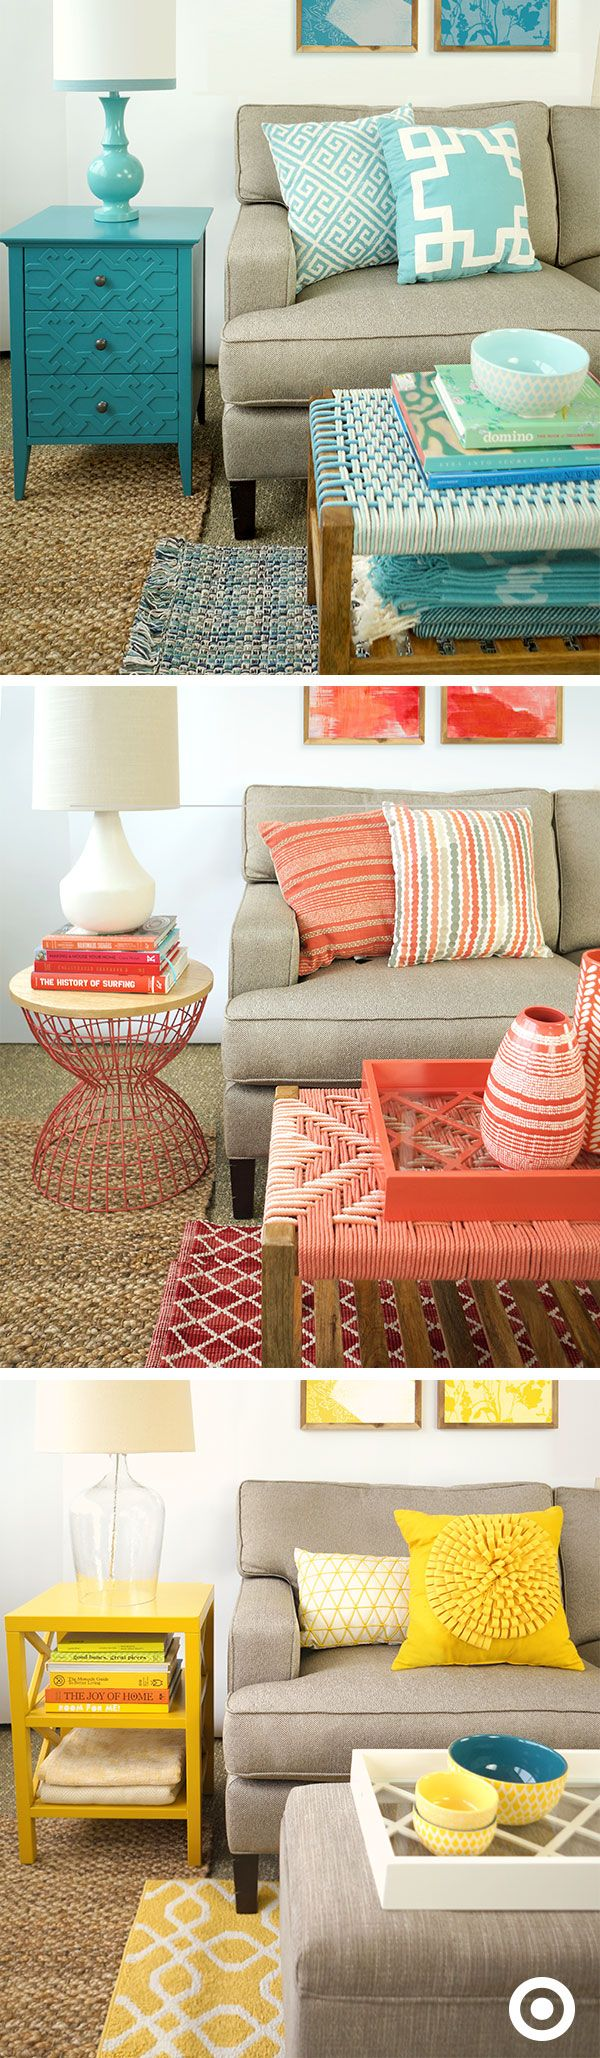 Best 25+ Accent pieces ideas on Pinterest | Coffee table tray ...